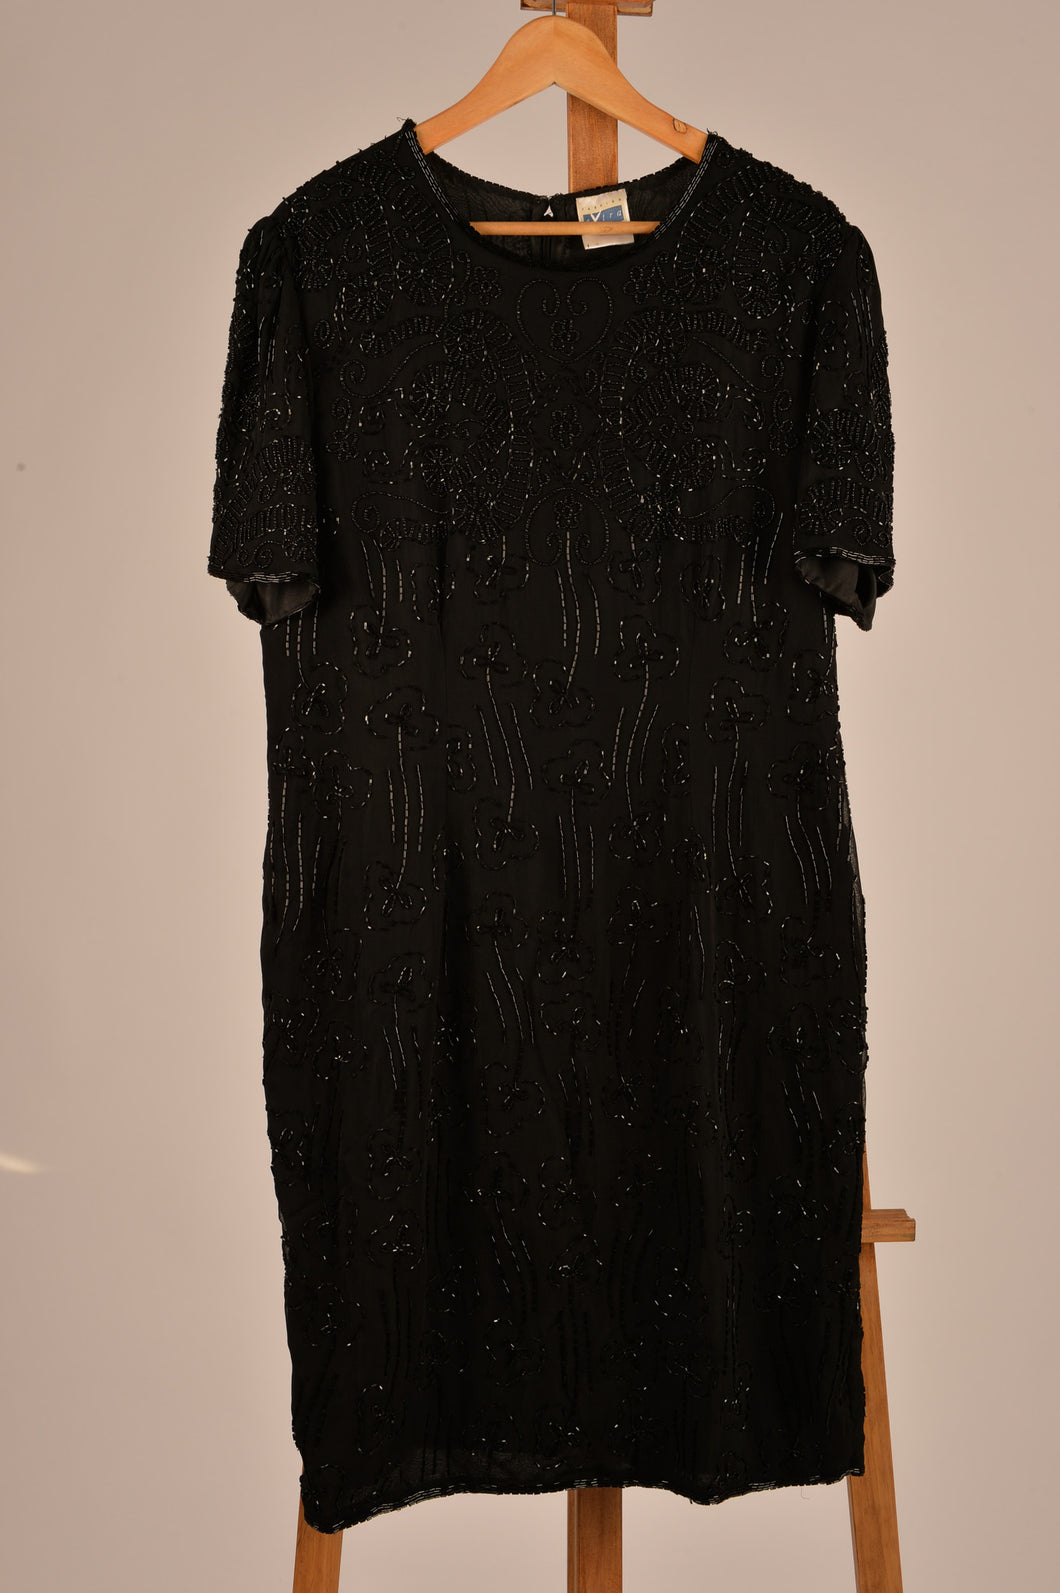 Vintage Beaded Party Dress- Size 16